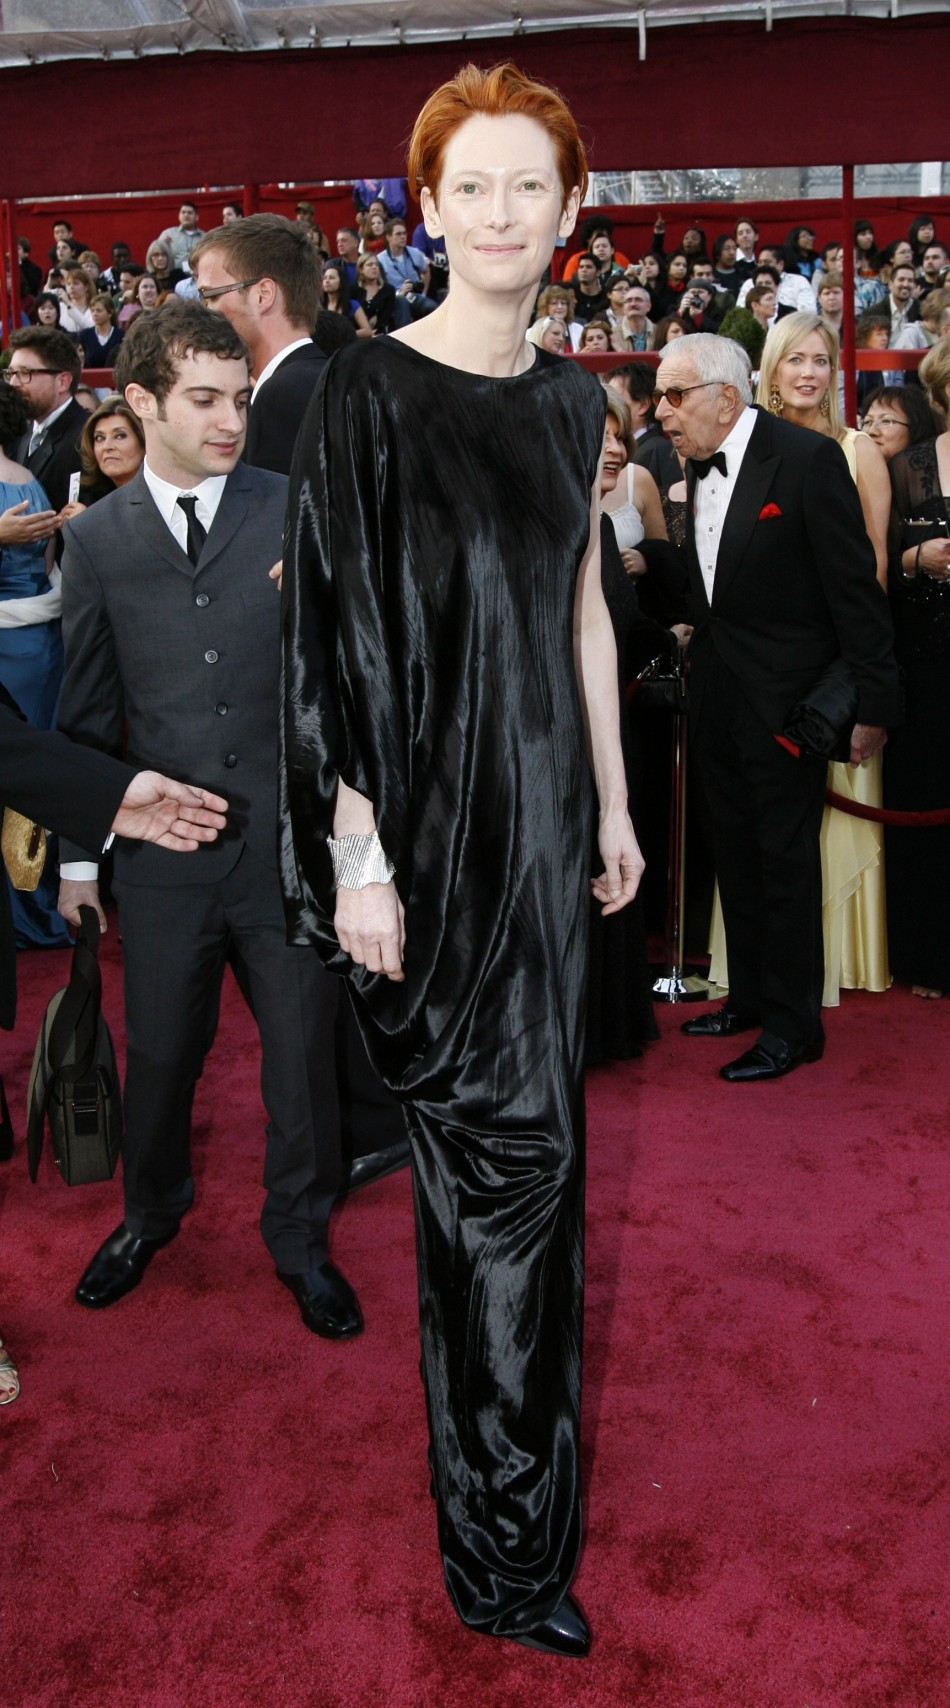 Tilda Swinton dressed in Alber Elbaz for Lanvin, arrives at the 80th annual Academy Awards, the Oscars, in Hollywood February 24, 2008.